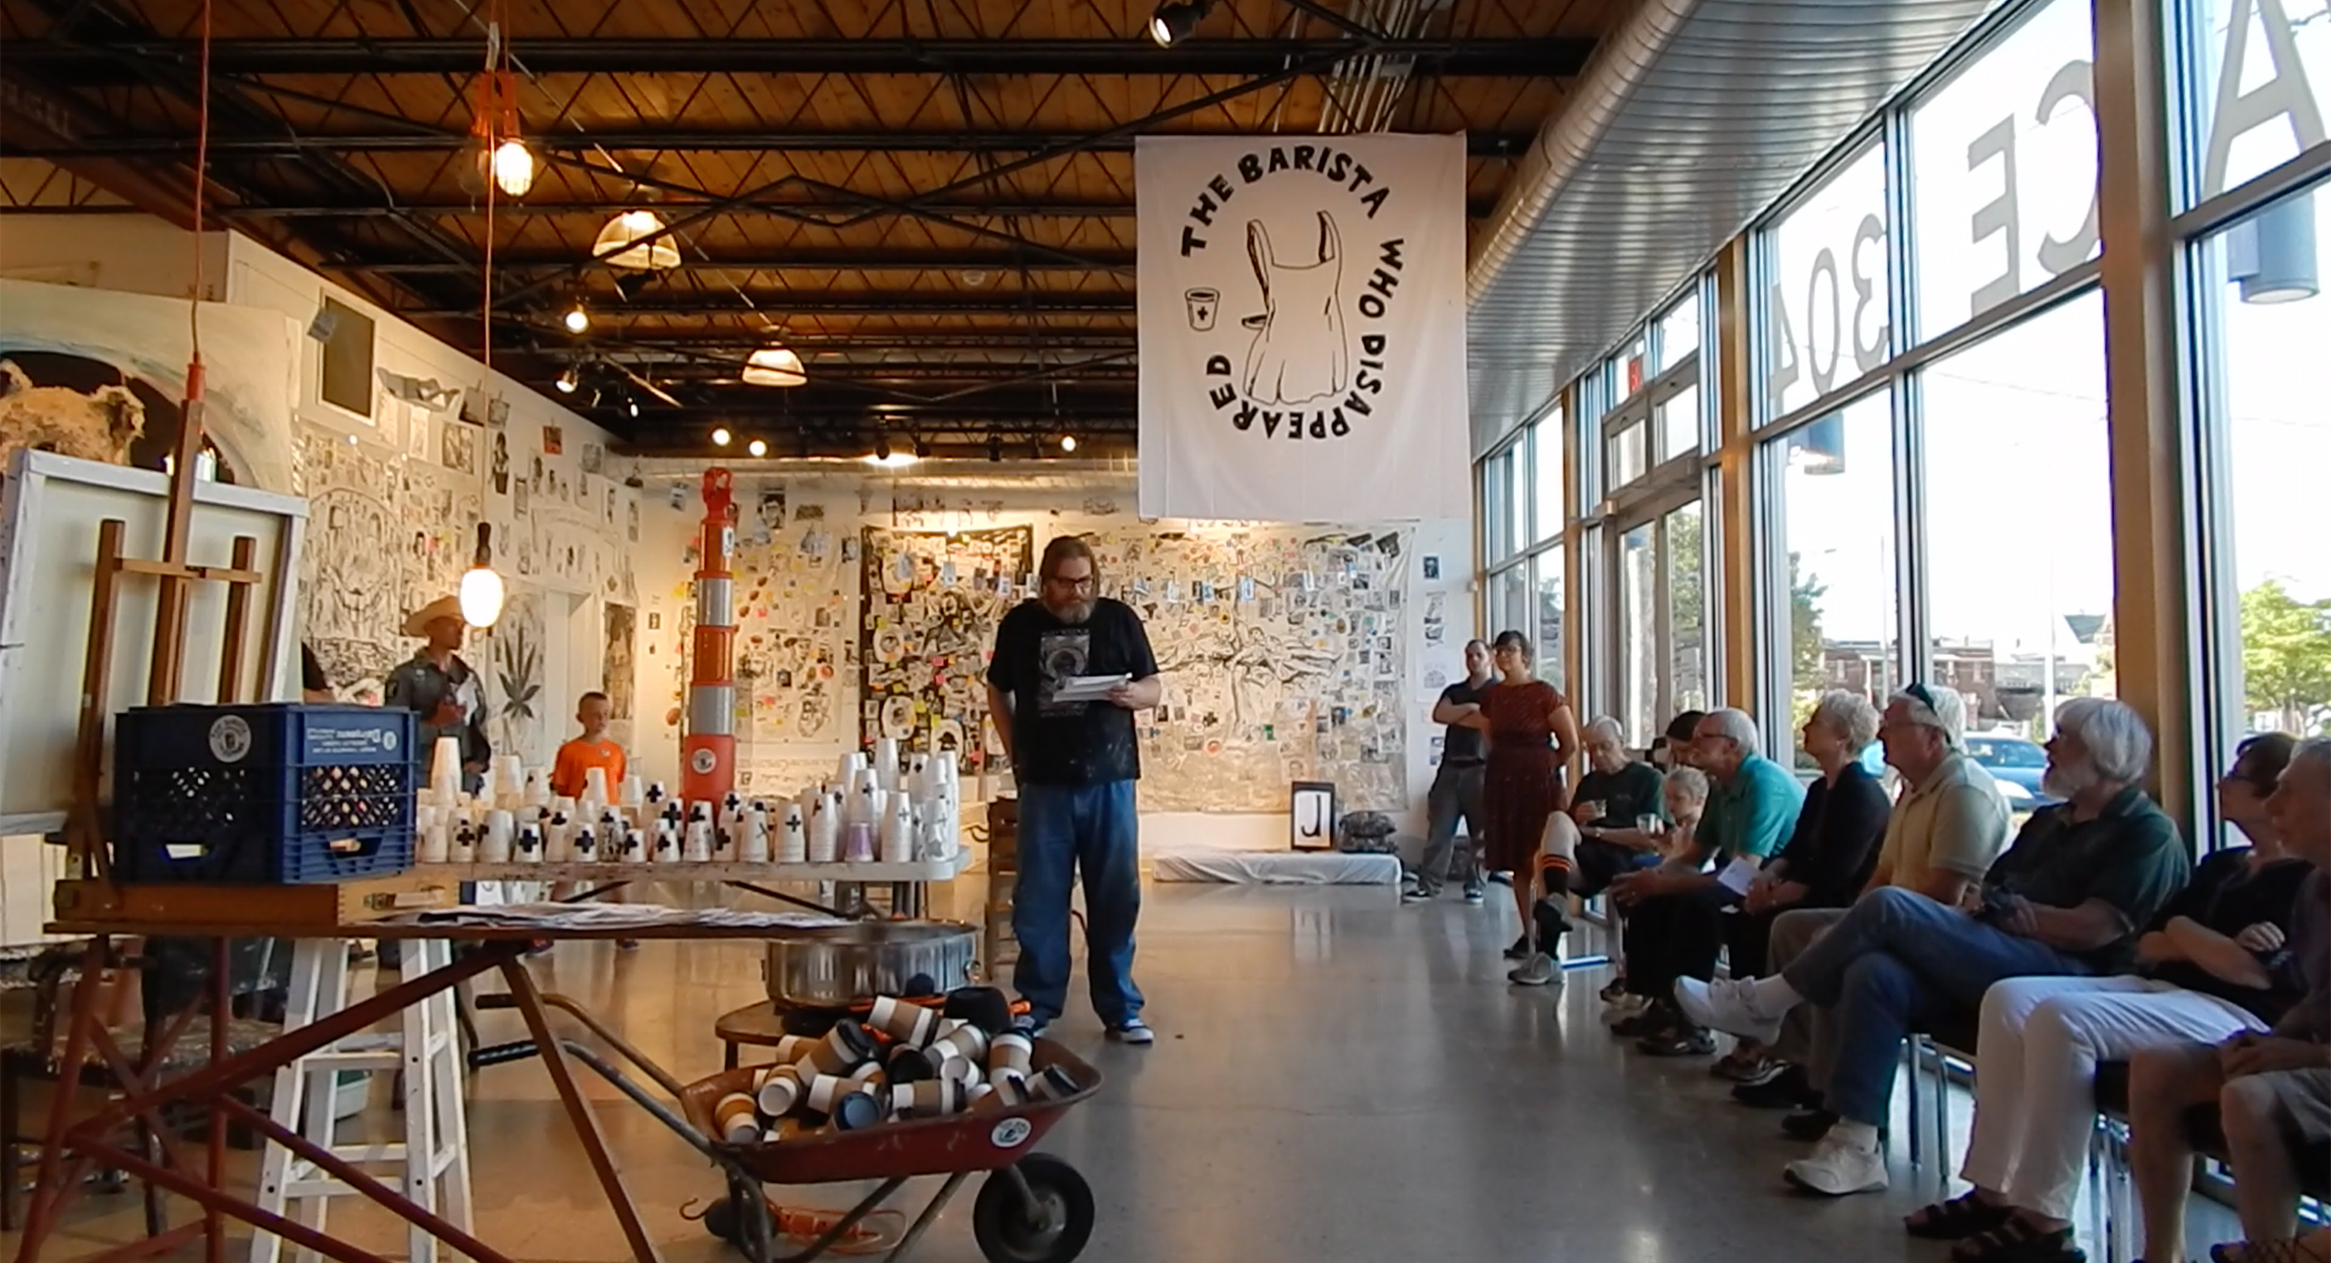 Artist talk at the opening of The Barista Who Disappeared at Artspace 304 (Carbondale, Illinois) (Summer 2018).